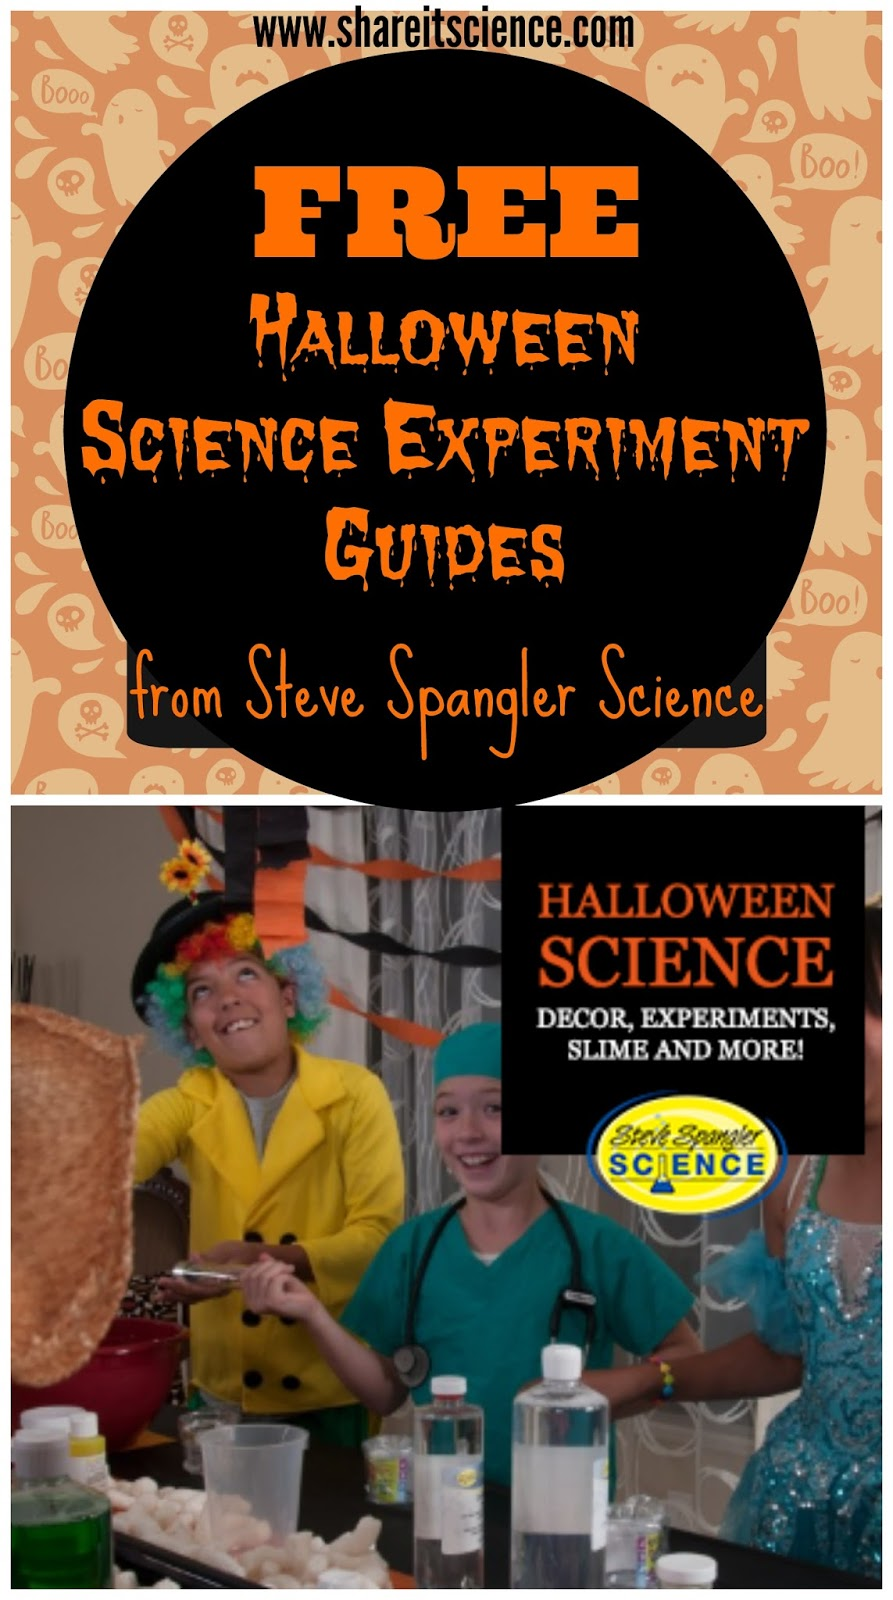 steve spangler science projects We teamed up with kid science guru steve spangler to get the coolest experiments you can try at home, including color-changing milk and a mentos diet coke geyser.